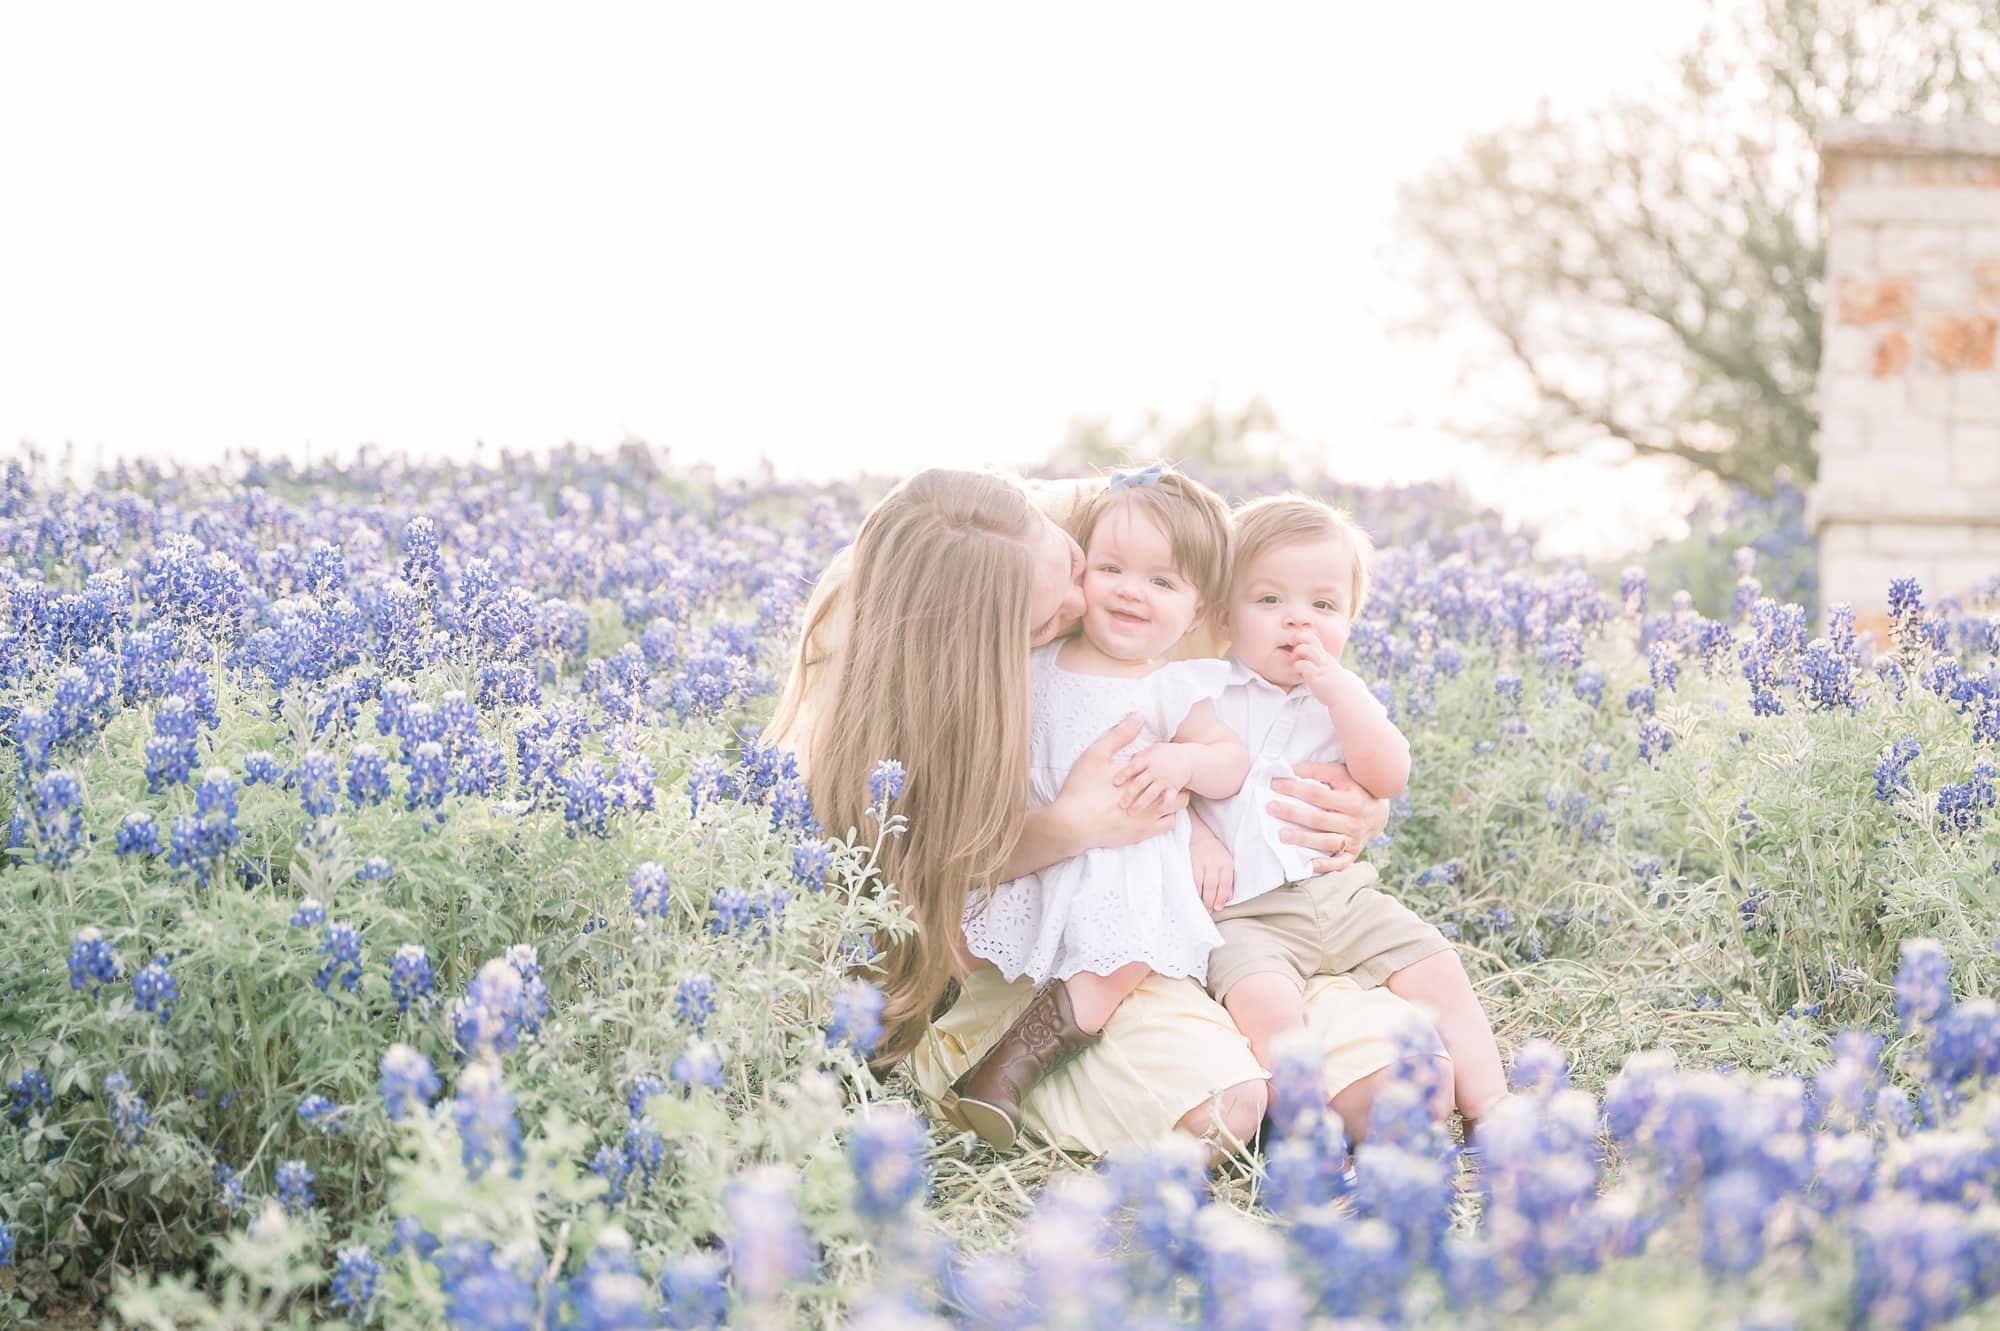 Mom kissing baby girl while twins sit on her lap in field of bluebonnets. Photo by Aimee Hamilton Photography.